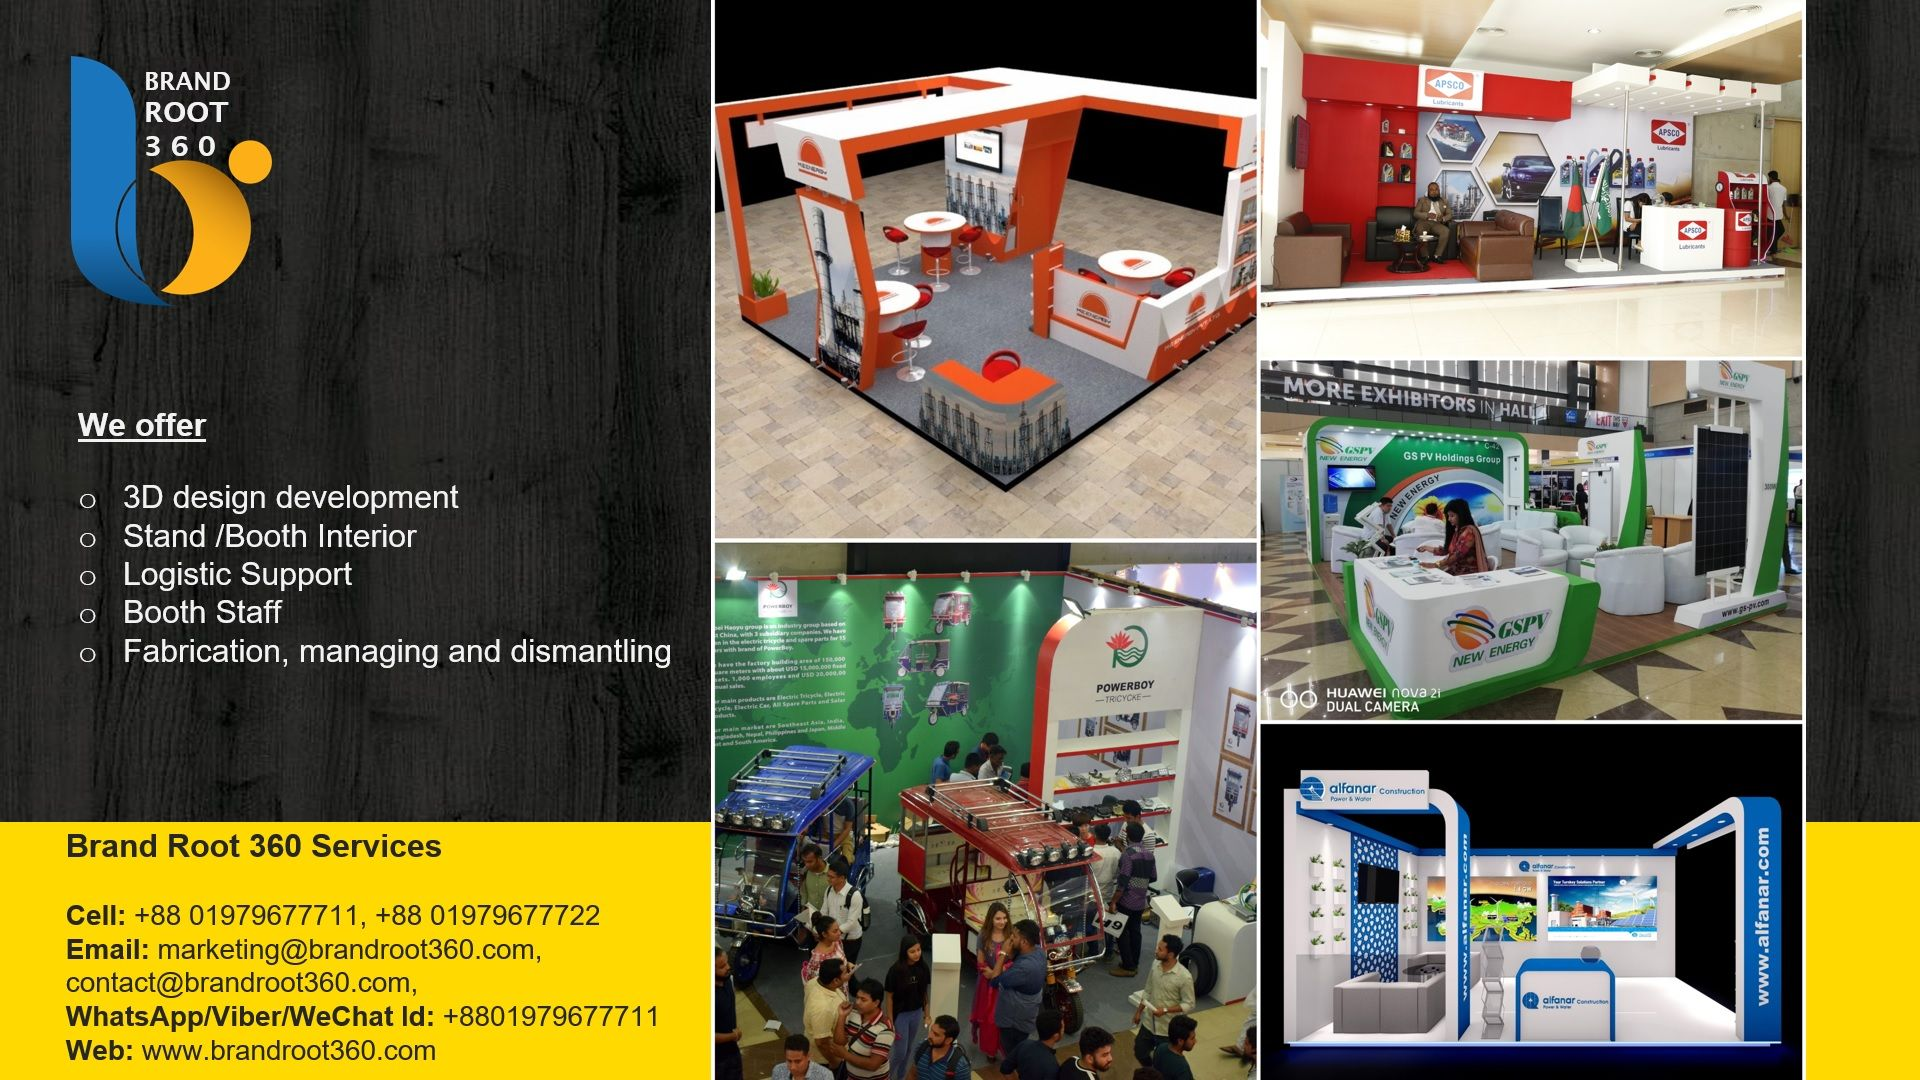 Contact with us for your exhibition stand interior works Brand Root